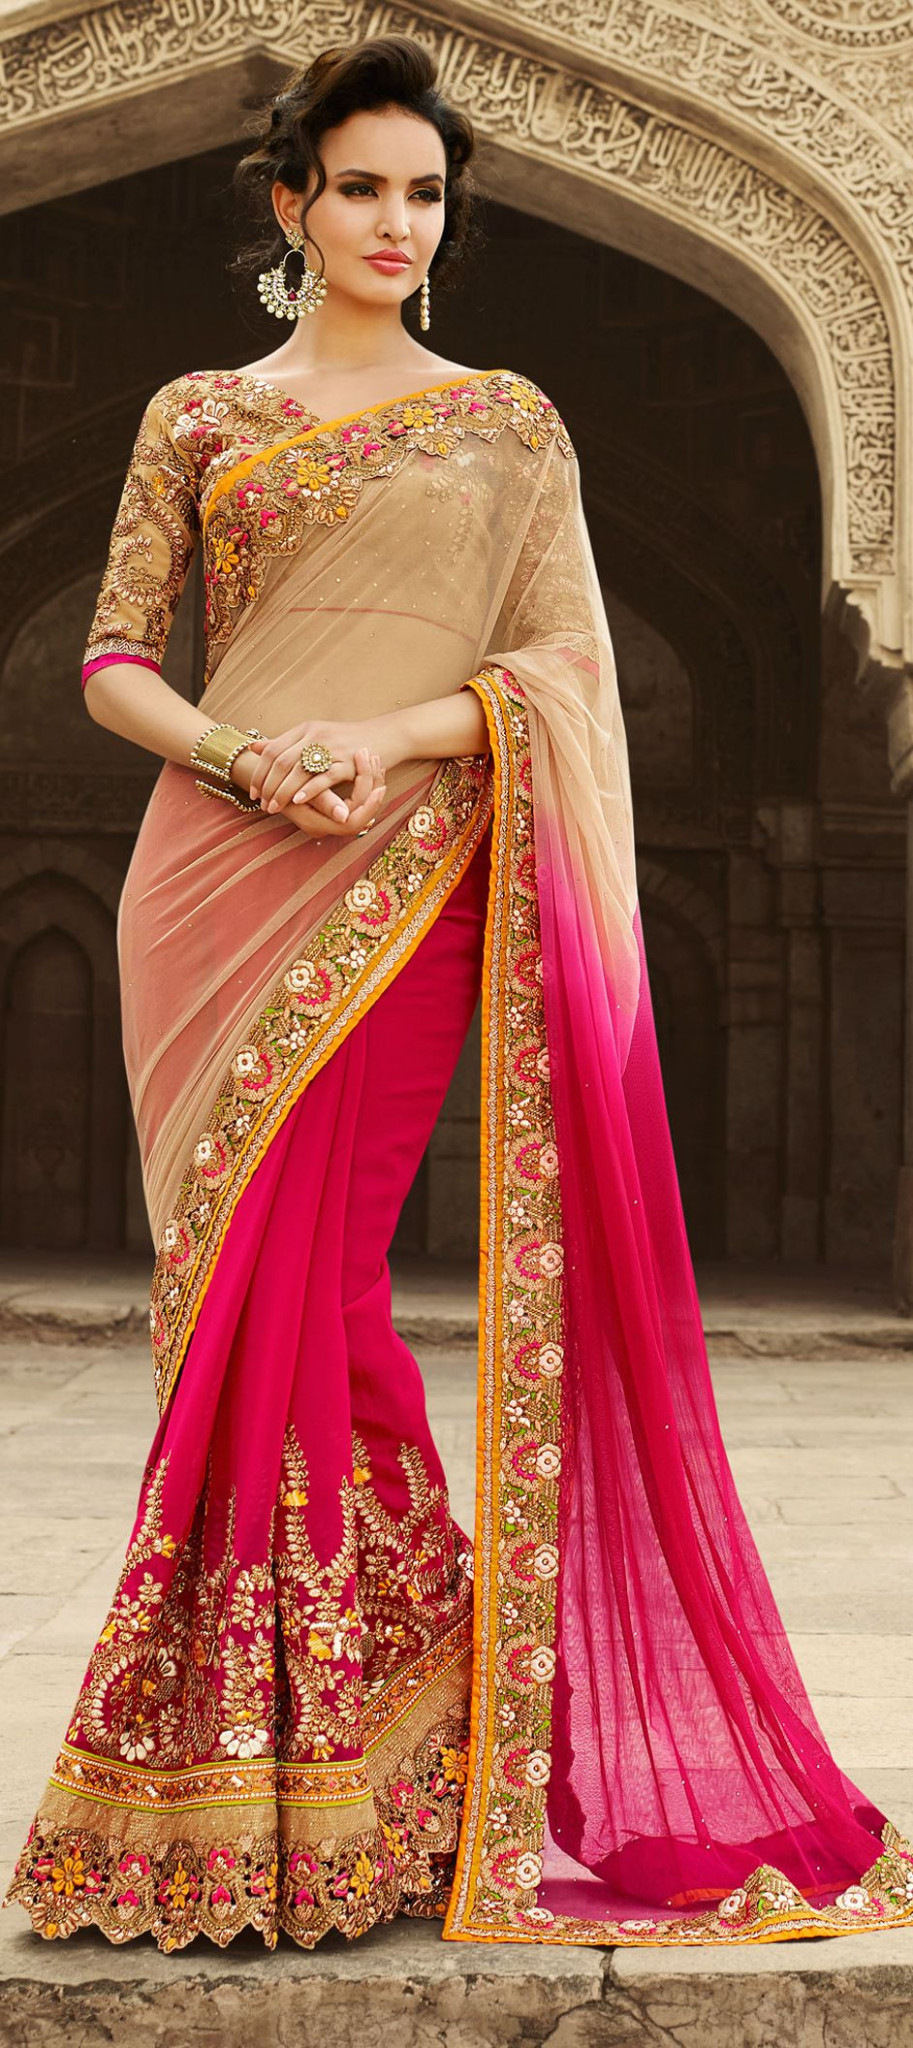 Faux Georgette Bridal Saree in Pink and Majenta with